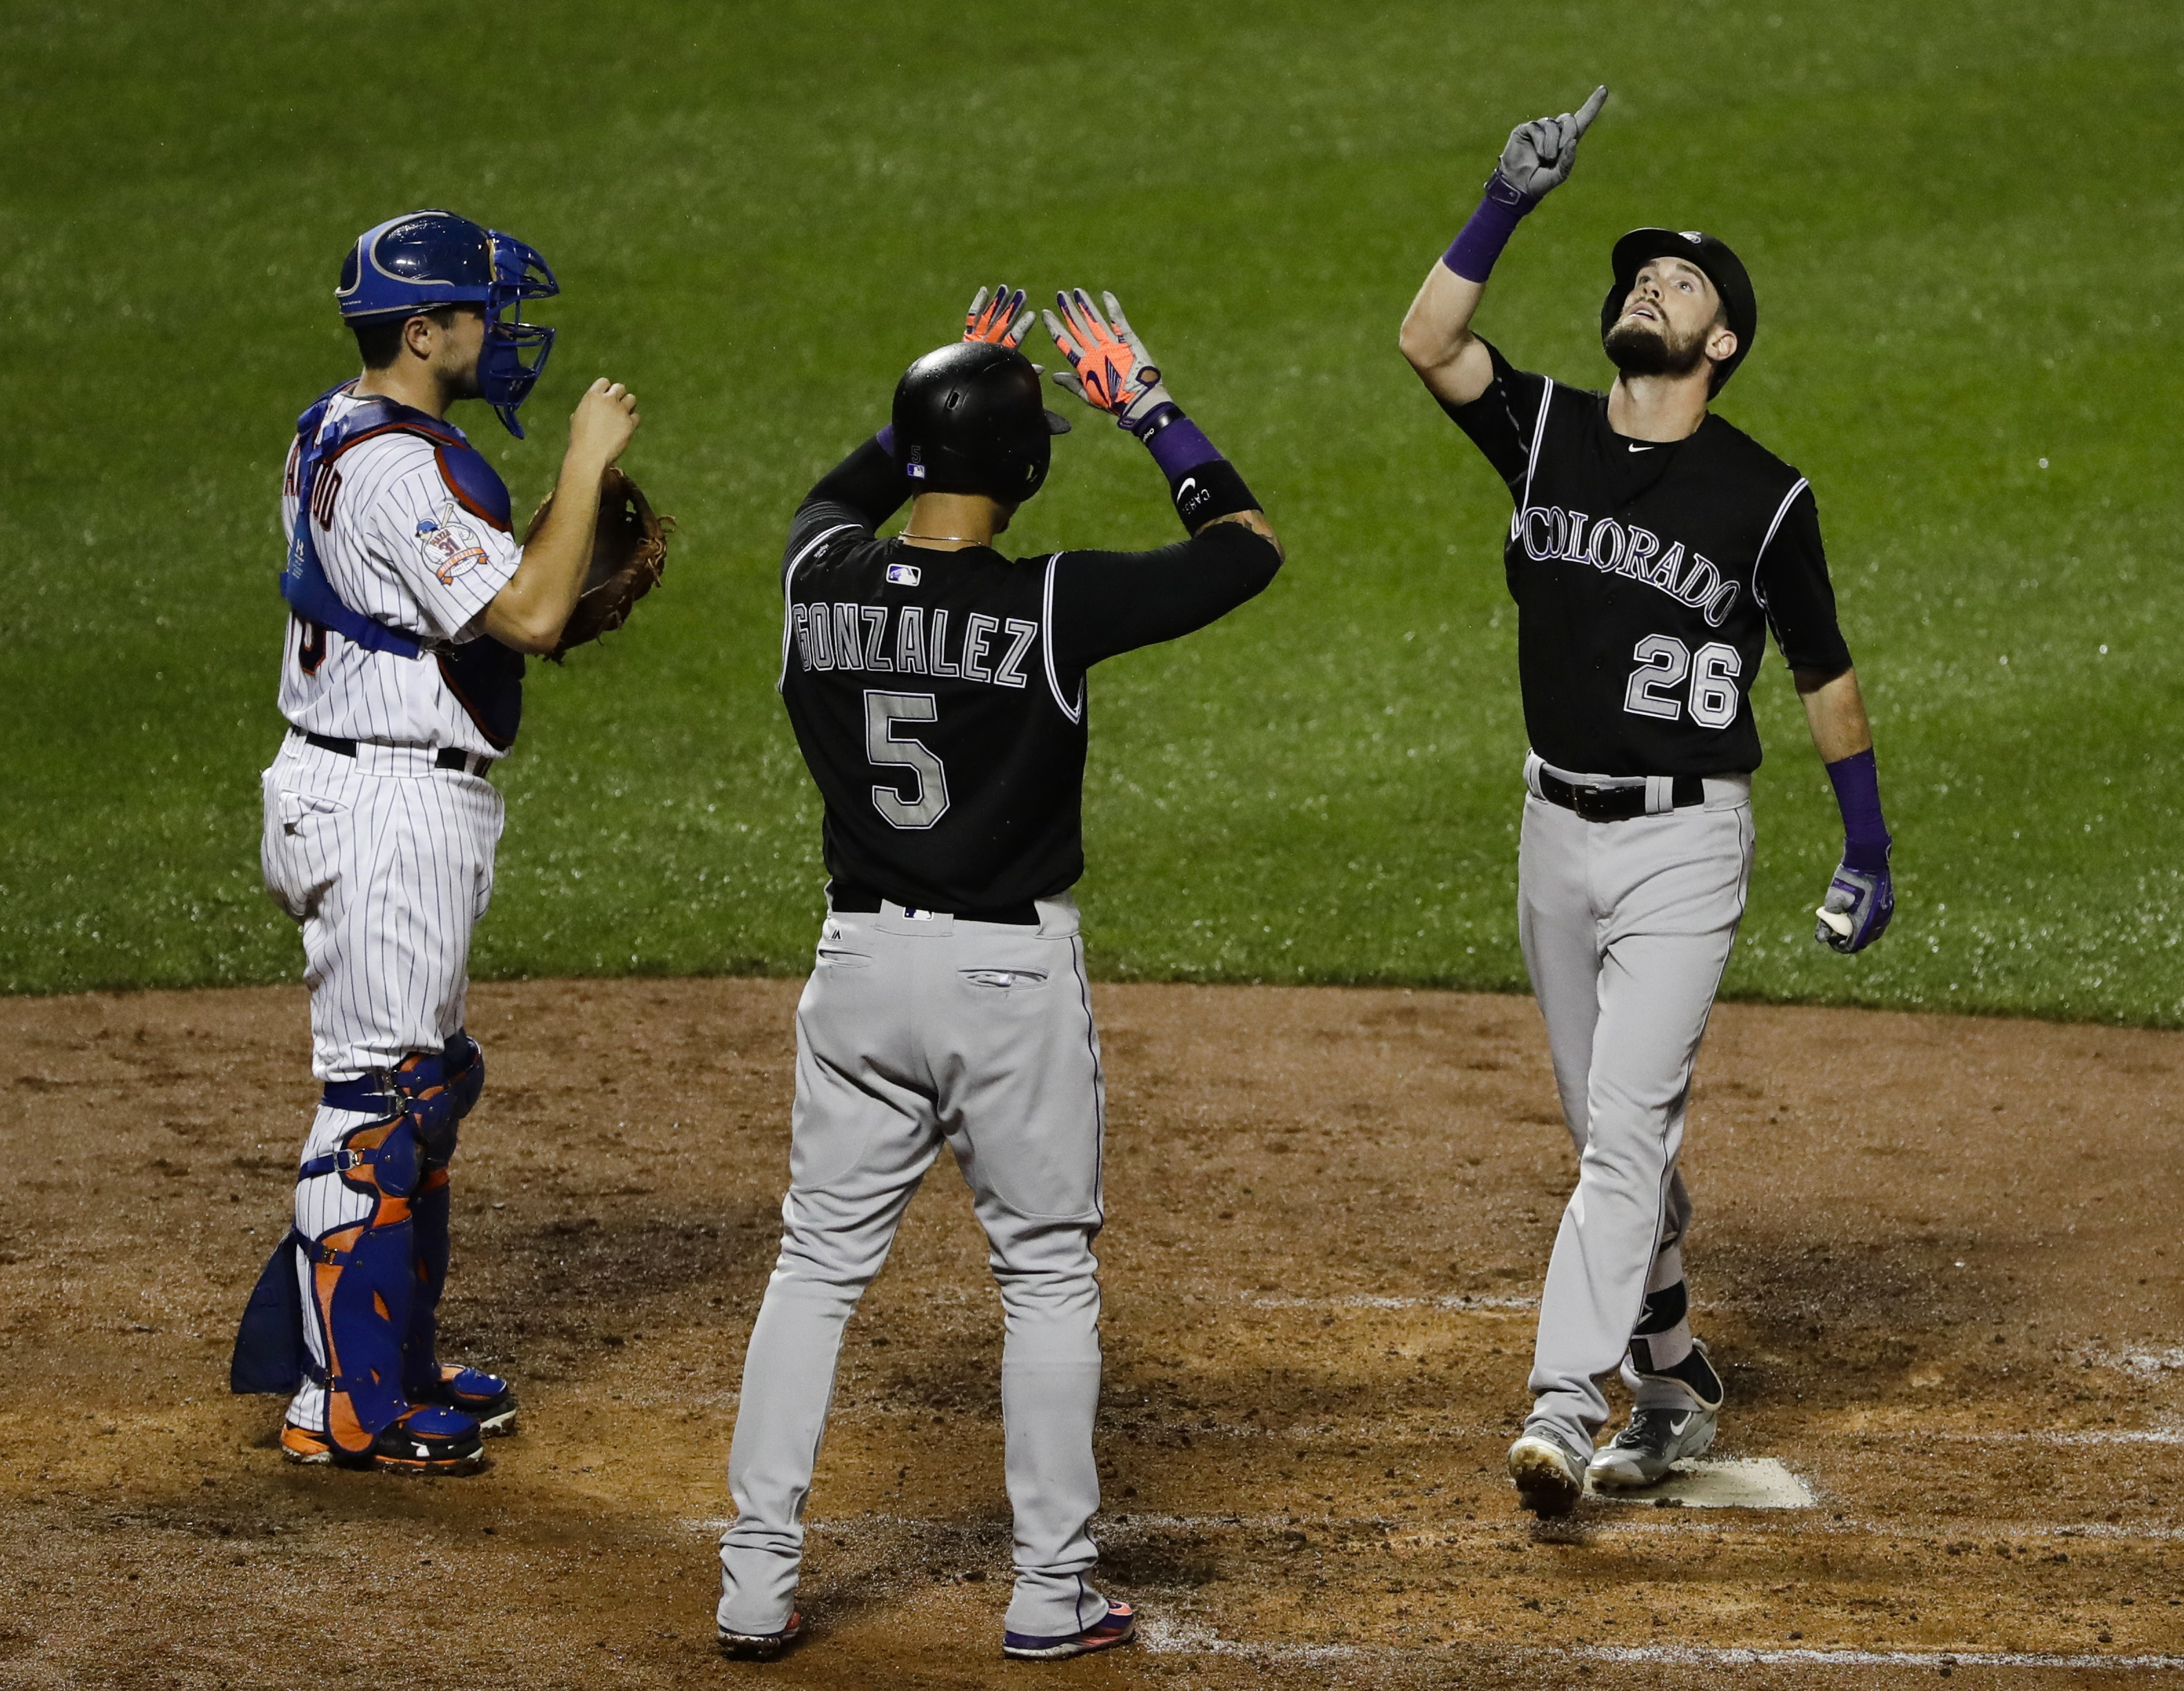 Colorado Rockies' David Dahl (26) and Carlos Gonzalez (5) celebrate after Dahl hit a two-run home run during the fourth inning of a baseball game as New York Mets catcher Travis d'Arnaud, left, watches, Saturday, July 30, 2016, in New York. (AP Photo/Fran